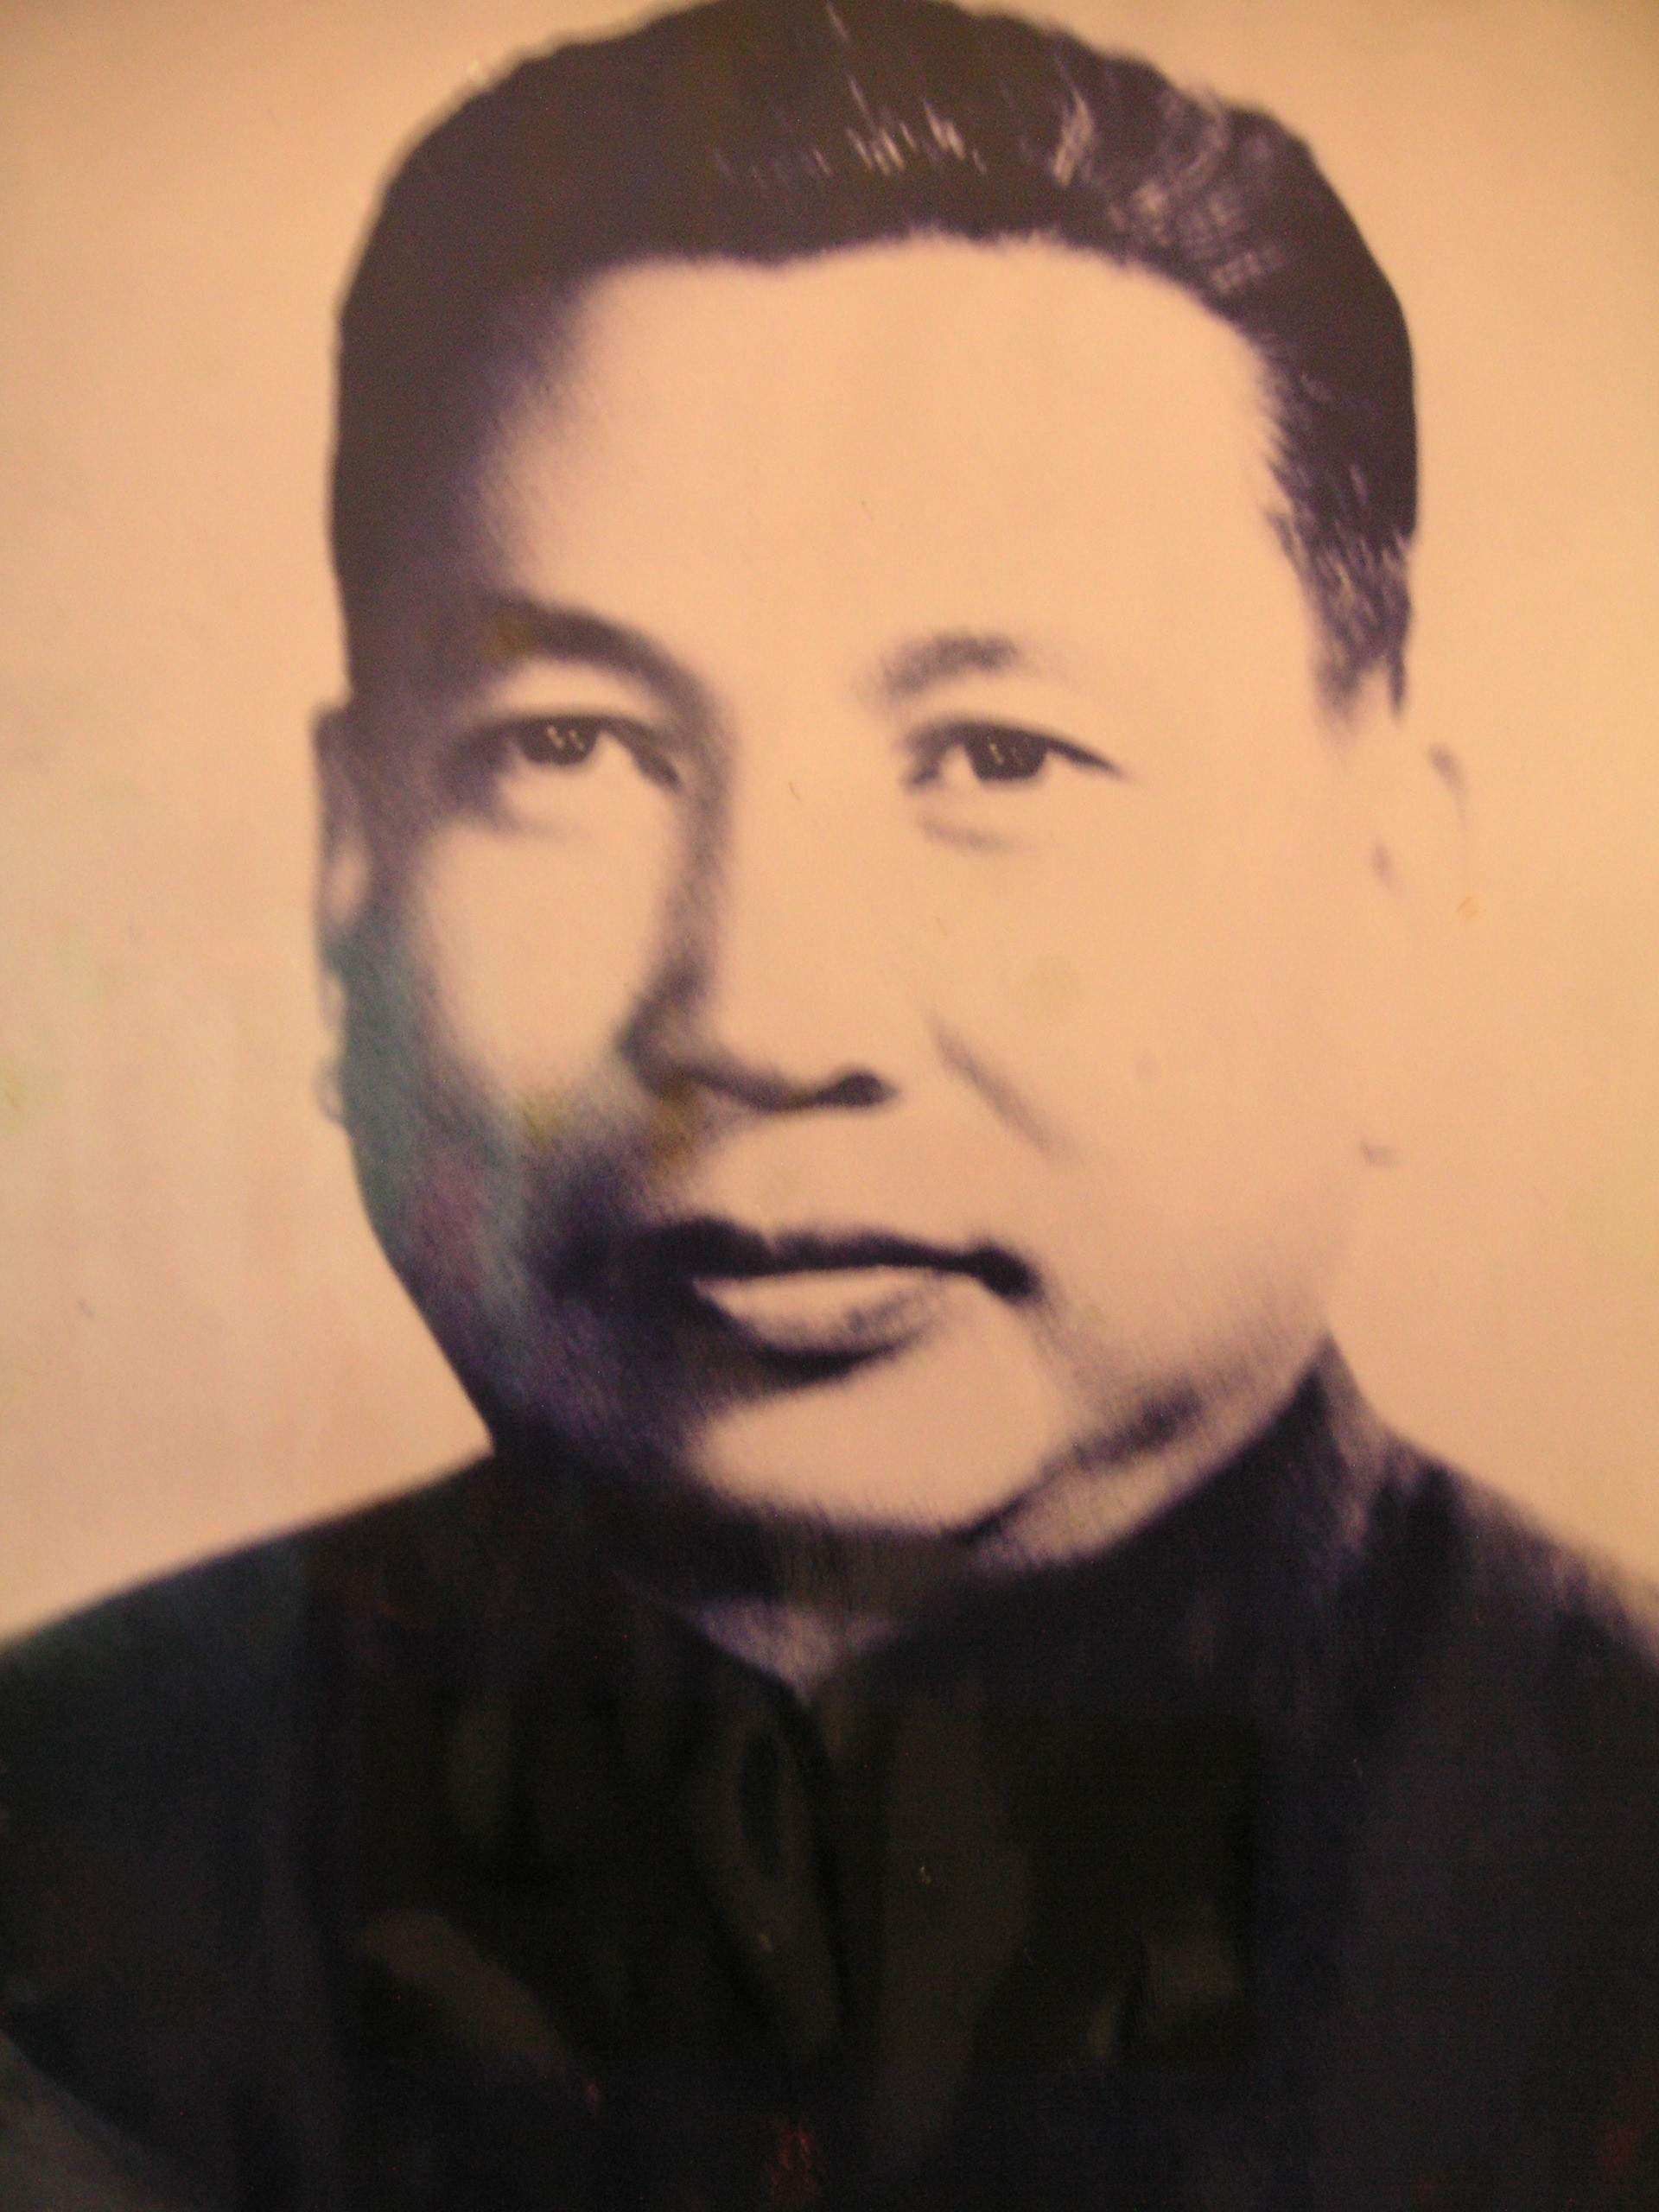 Pol Pot Quotes Pol Pot  I'm Fascinated How The Truly Scary Ones Often Don't Look